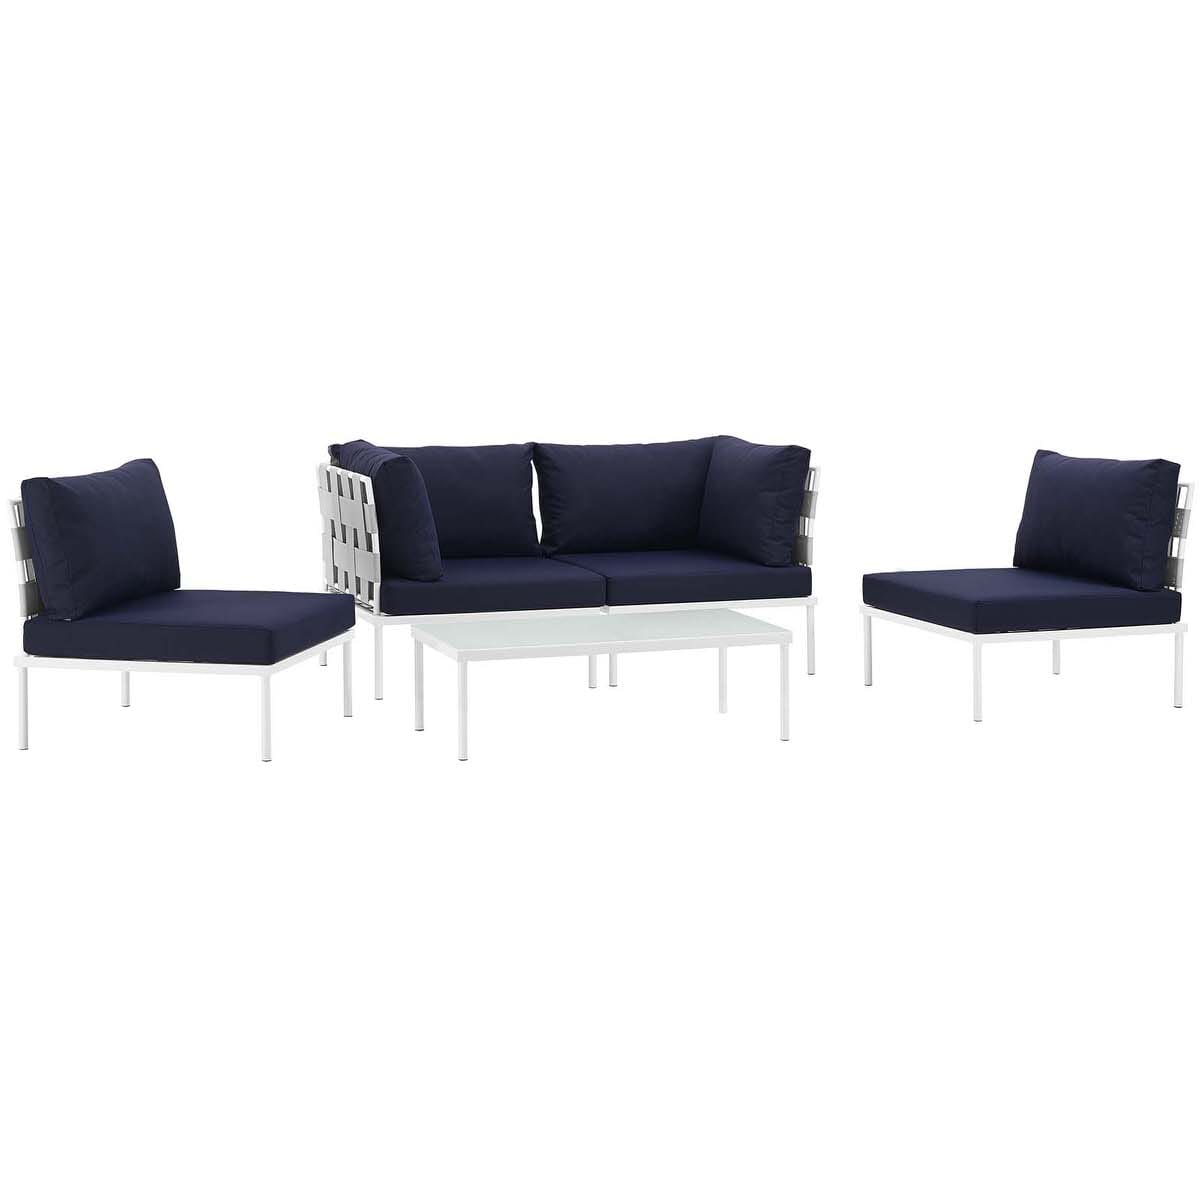 Harmony 5 Piece Outdoor Patio Aluminum Sectional Sofa Set White Navy By  Modern Living (Modern